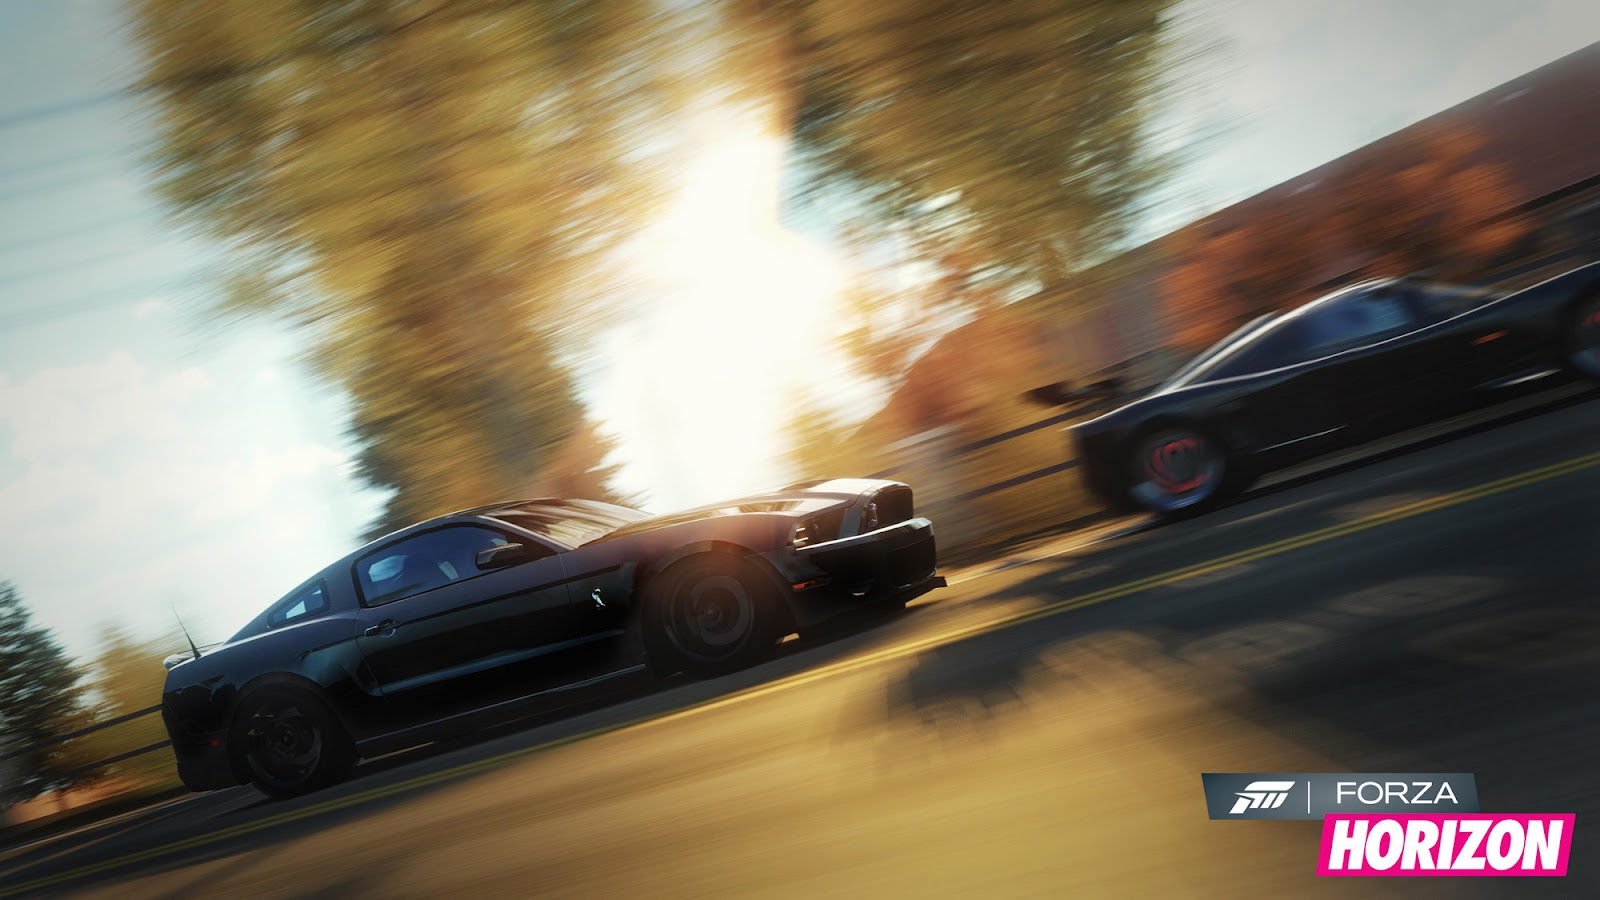 Forza Horizon HD & Widescreen Wallpaper 0.990293102875526